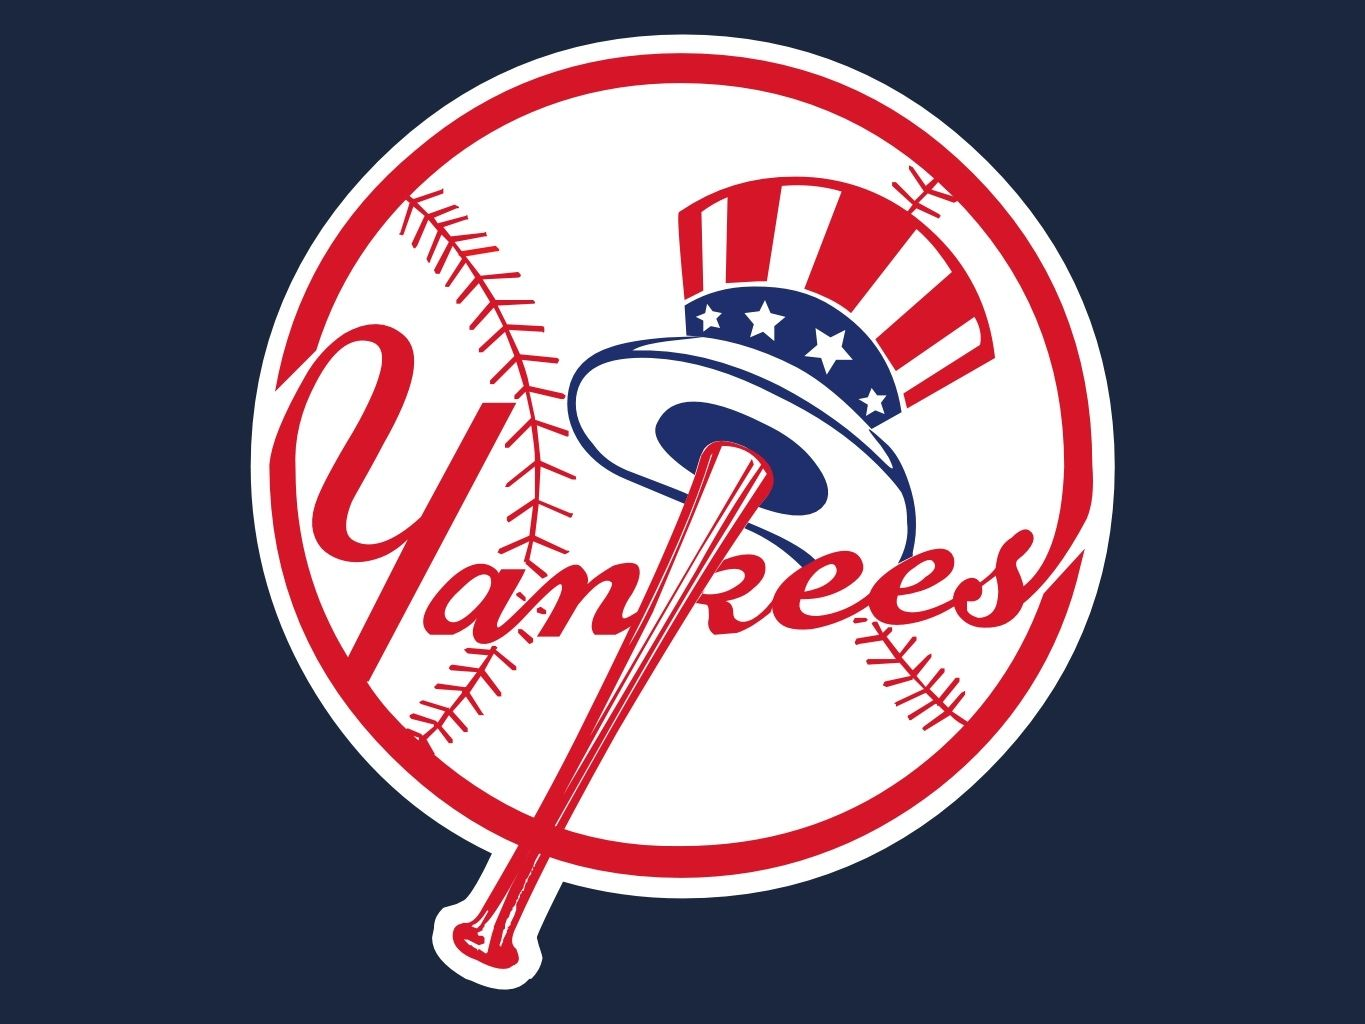 Buy, Sell or Bid for New York Yankees Tickets, Every Ticket Has a ...